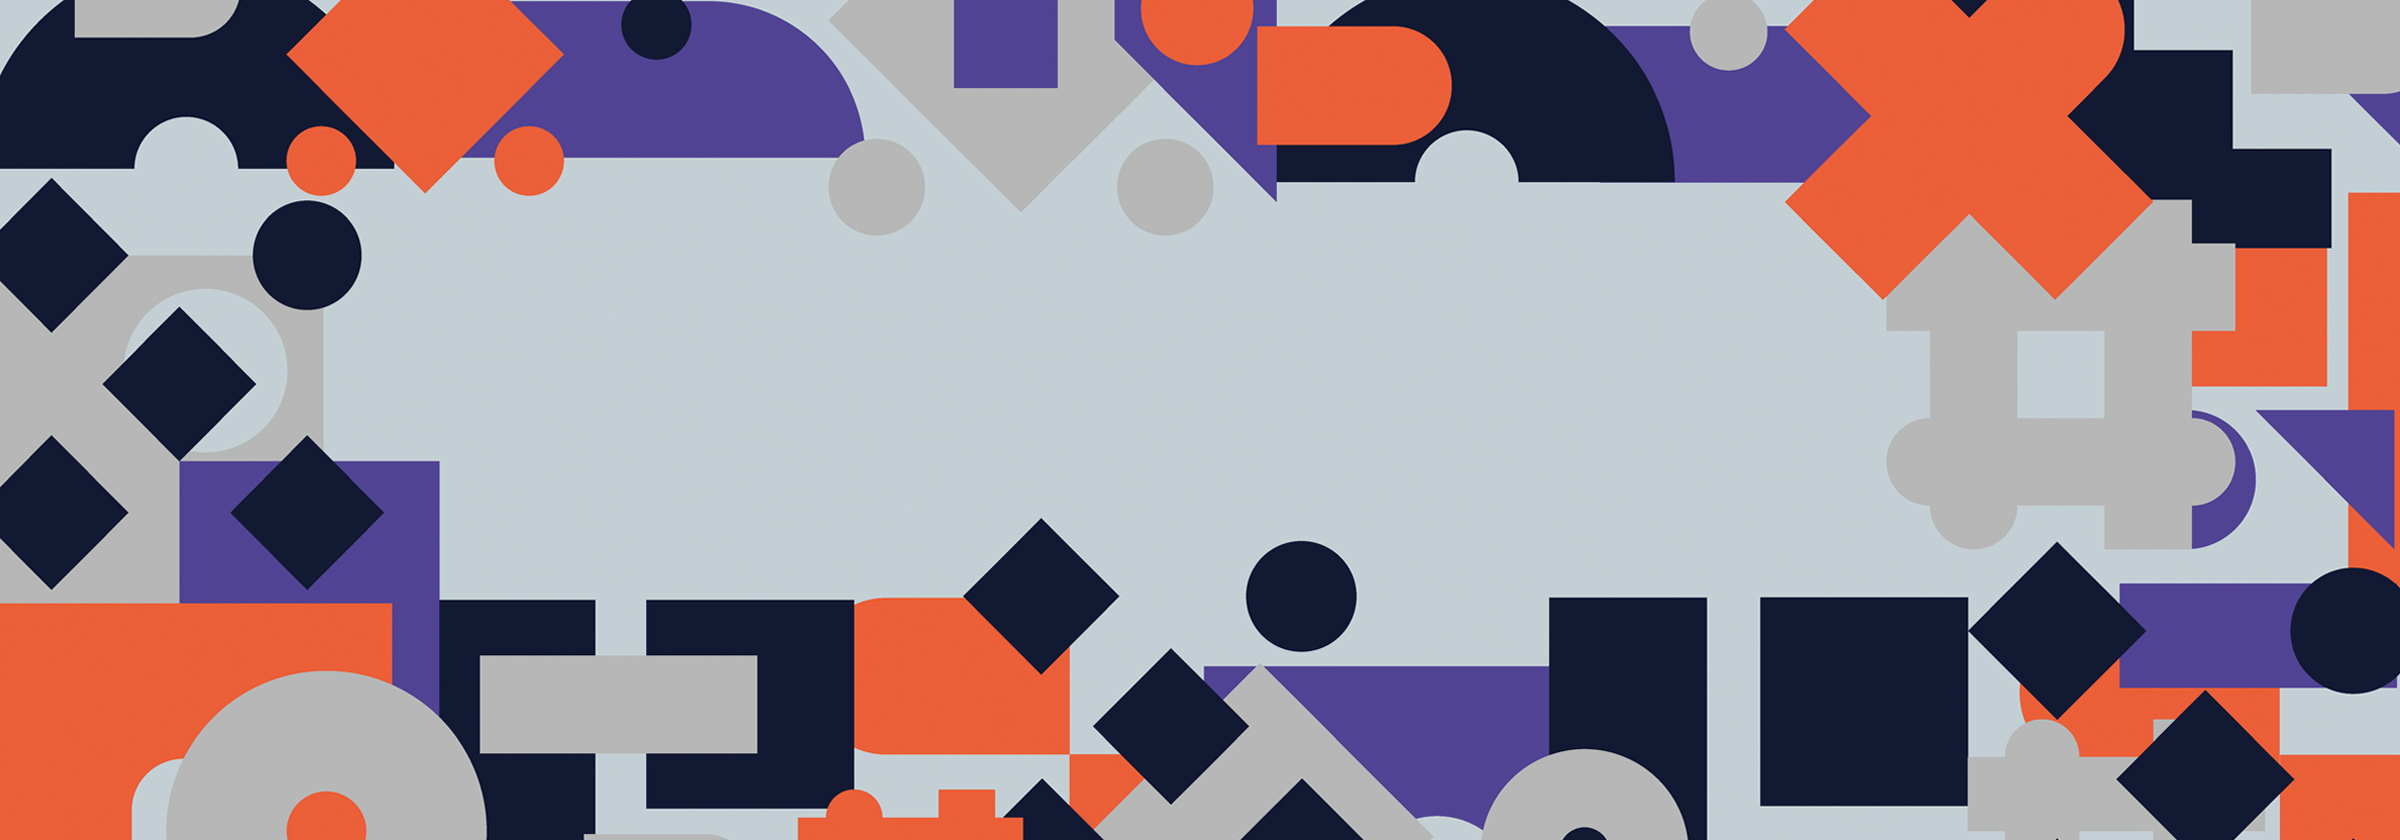 Fashion Means Business graphic of coloured shapes designed by LP Studio